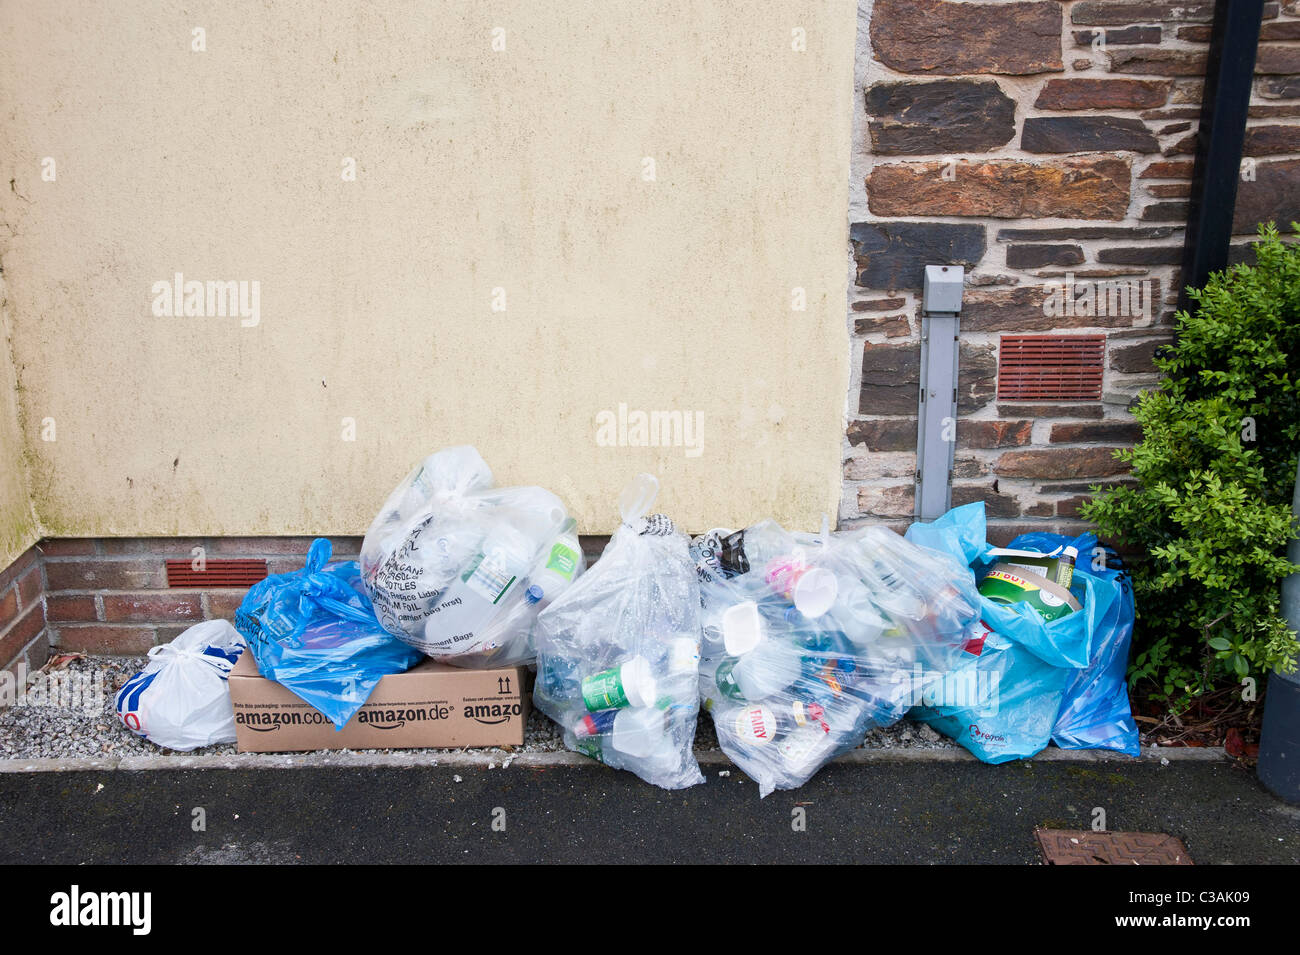 Recyclable household waste put out for kerbside collection. Householders sort the waste into eg glass, plastic, - Stock Image